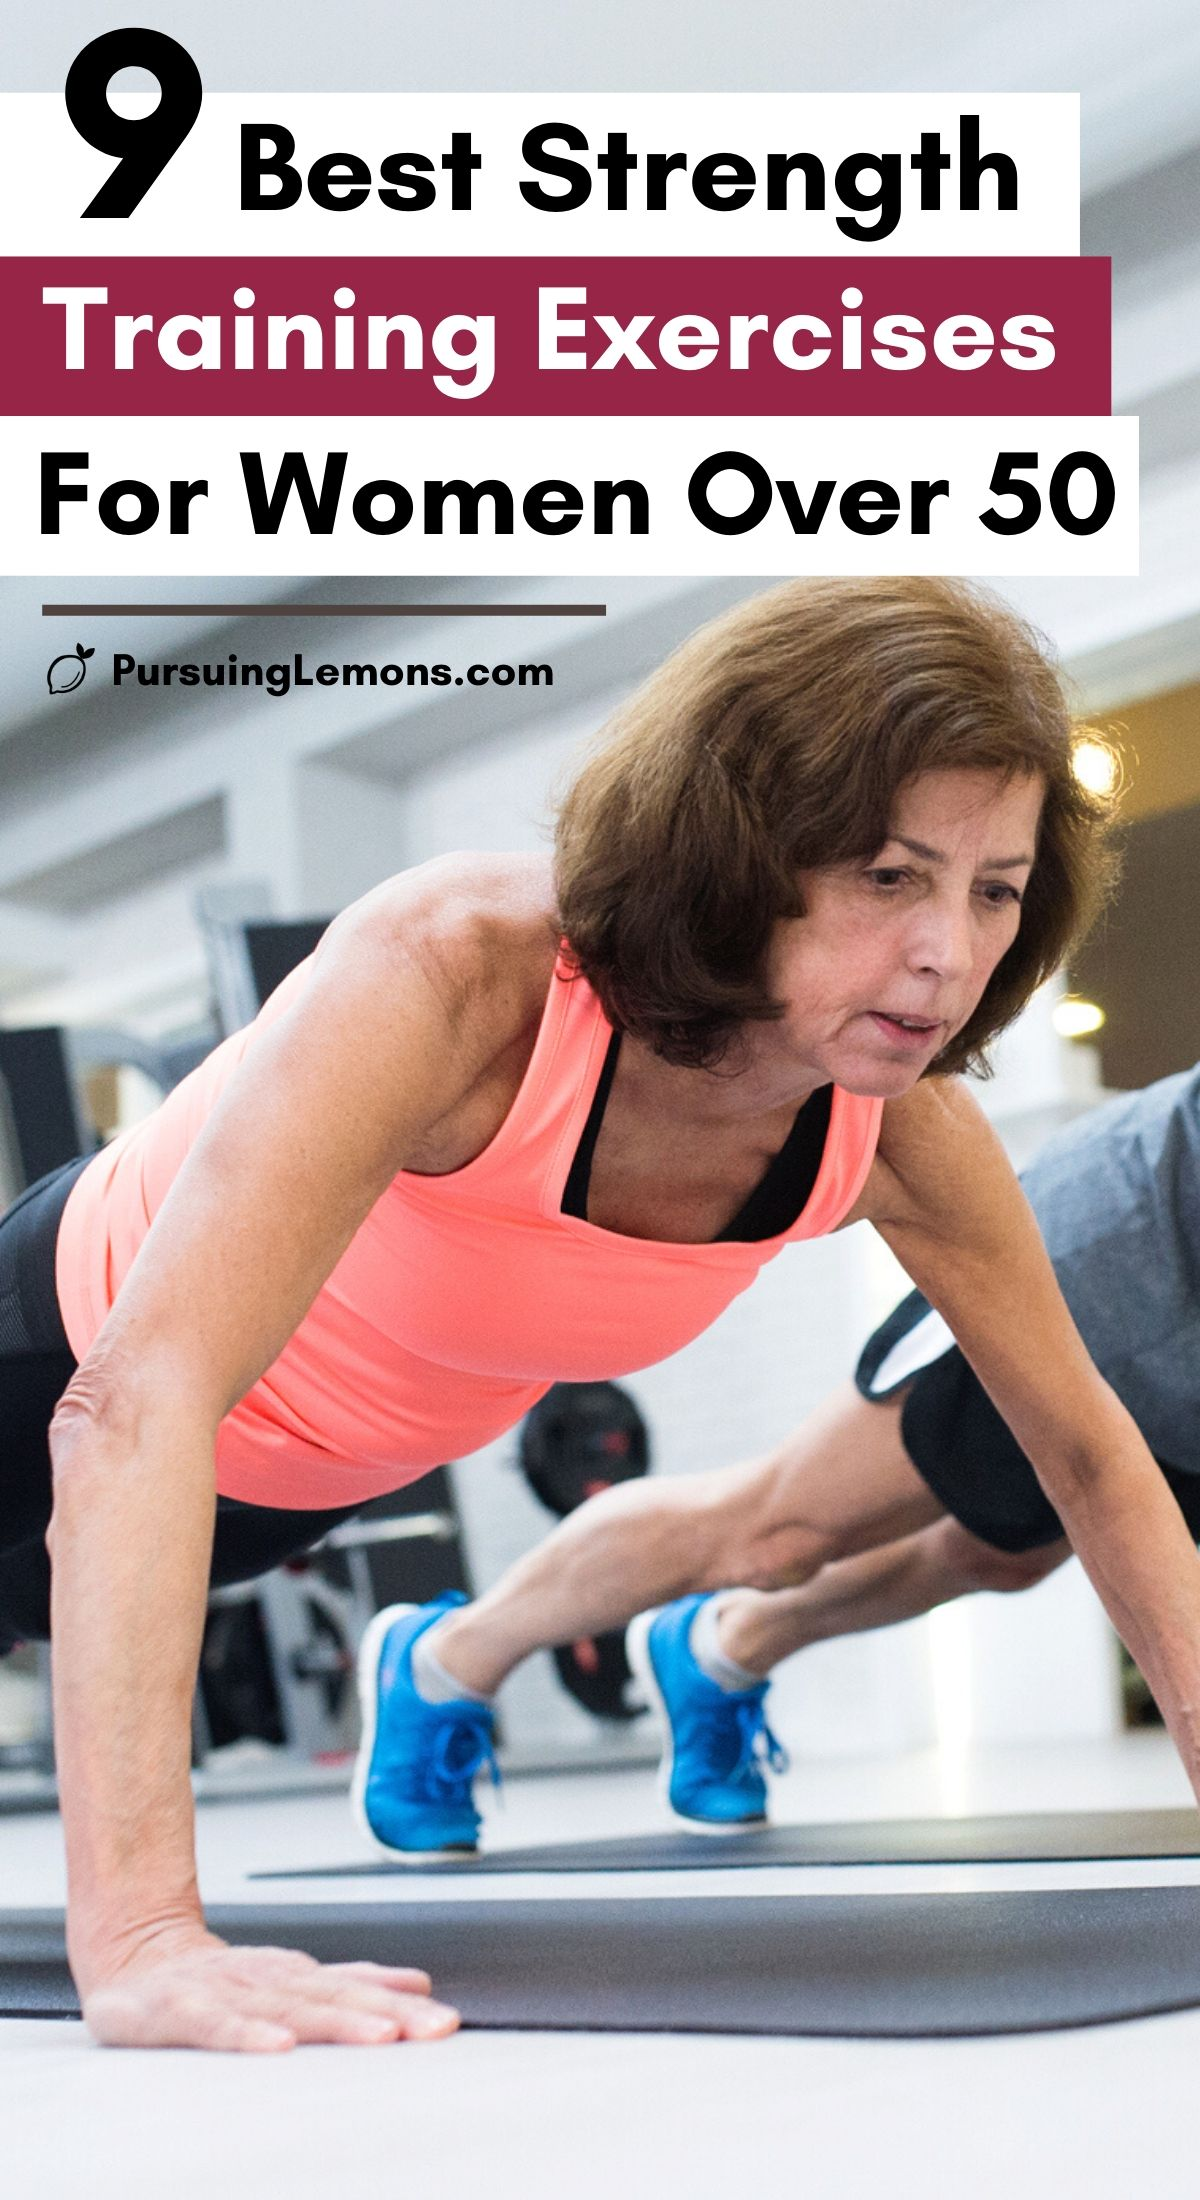 9 Best Strength Training Exercises for Women Over 50 | The secret to anti-aging magic? Strength training.  Lift Weights | Beginner | Full Body | At home | Must do